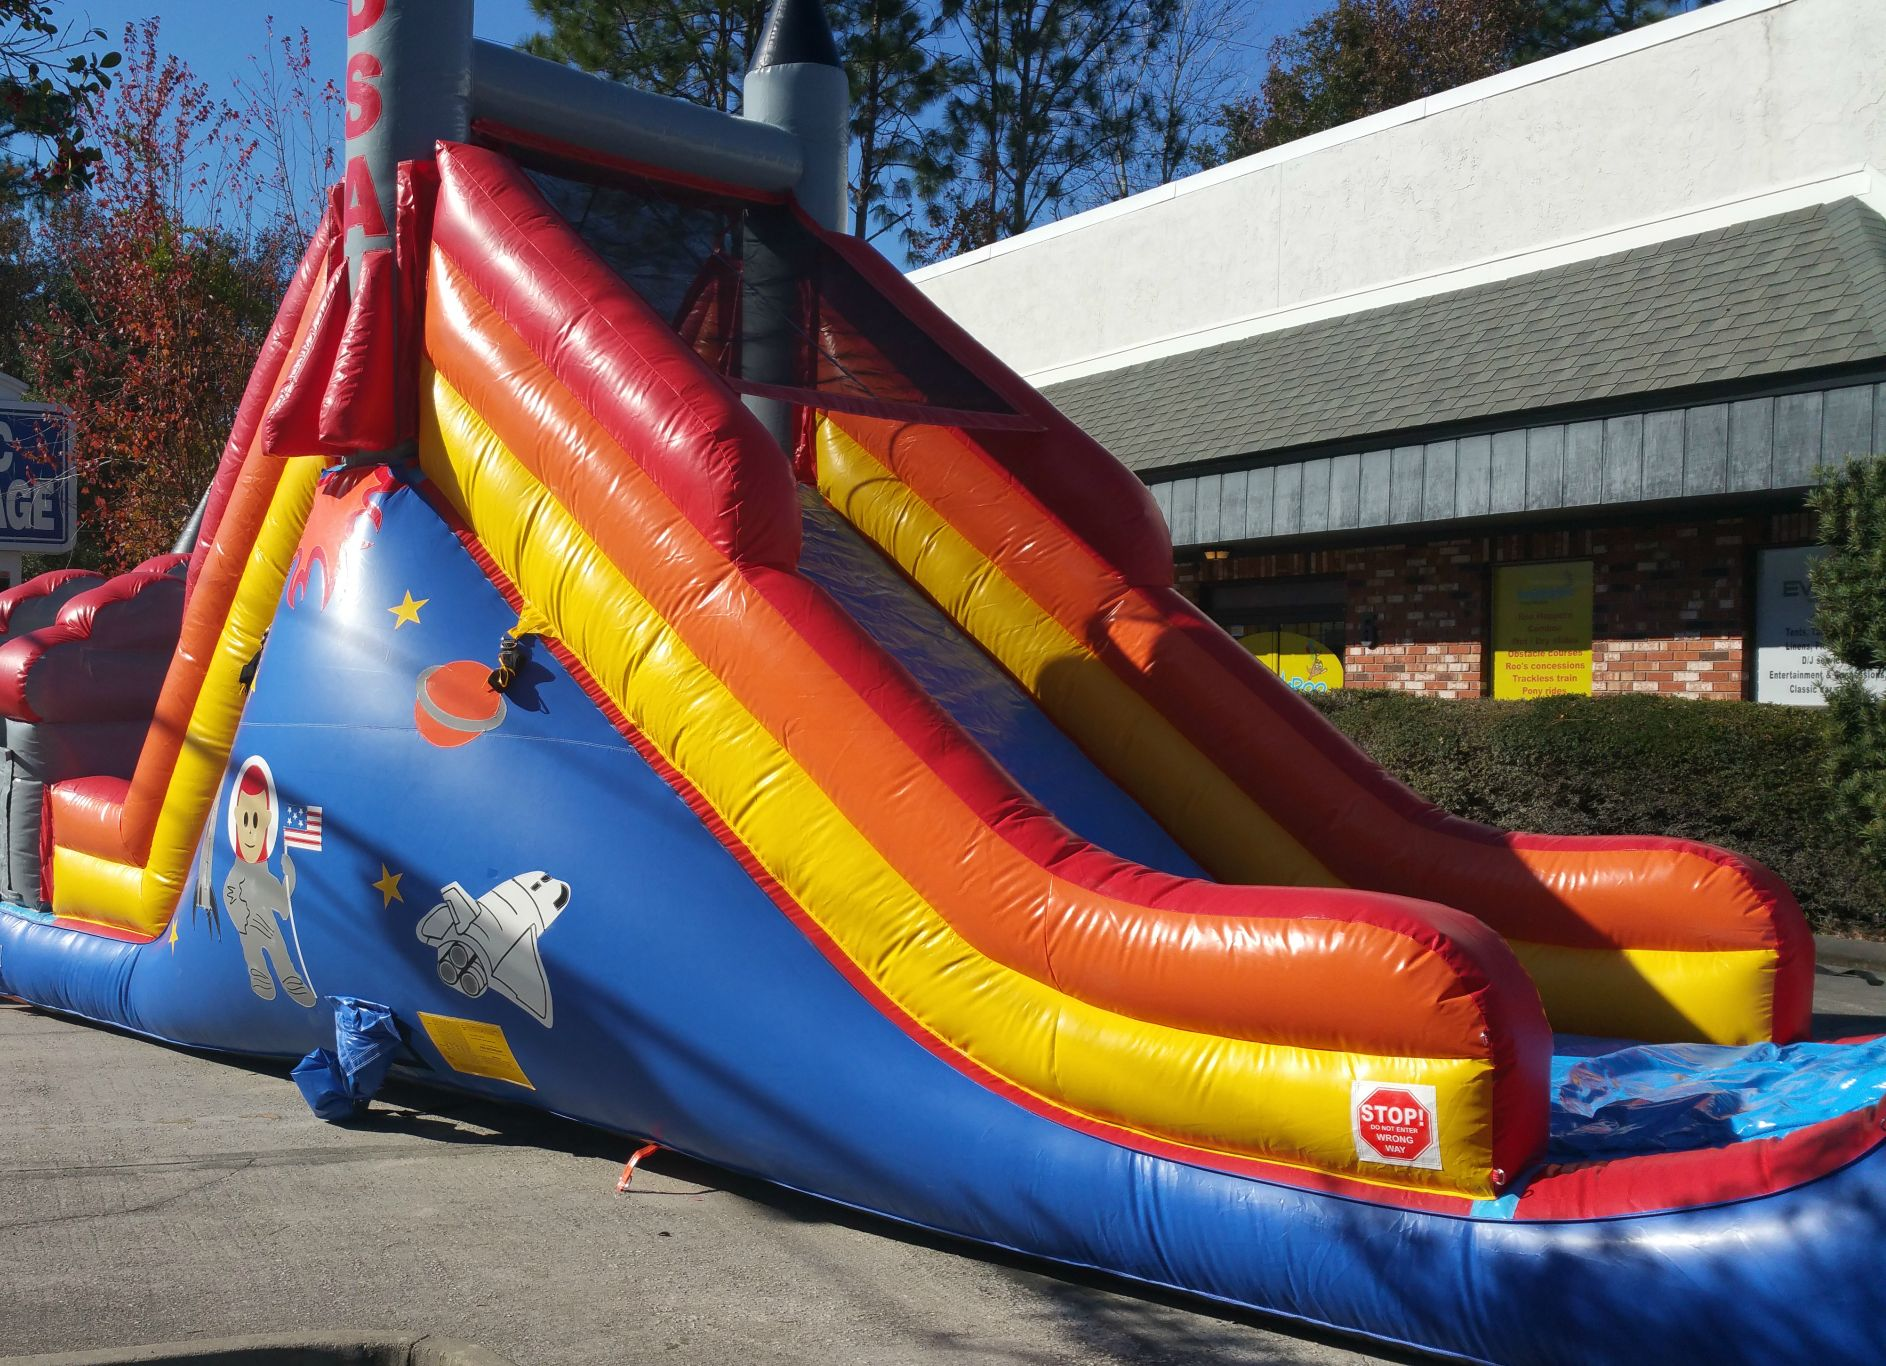 USA Rocket Slide 16' Bounce House Waterslide Wet or Dry image - Jacksonville, FL